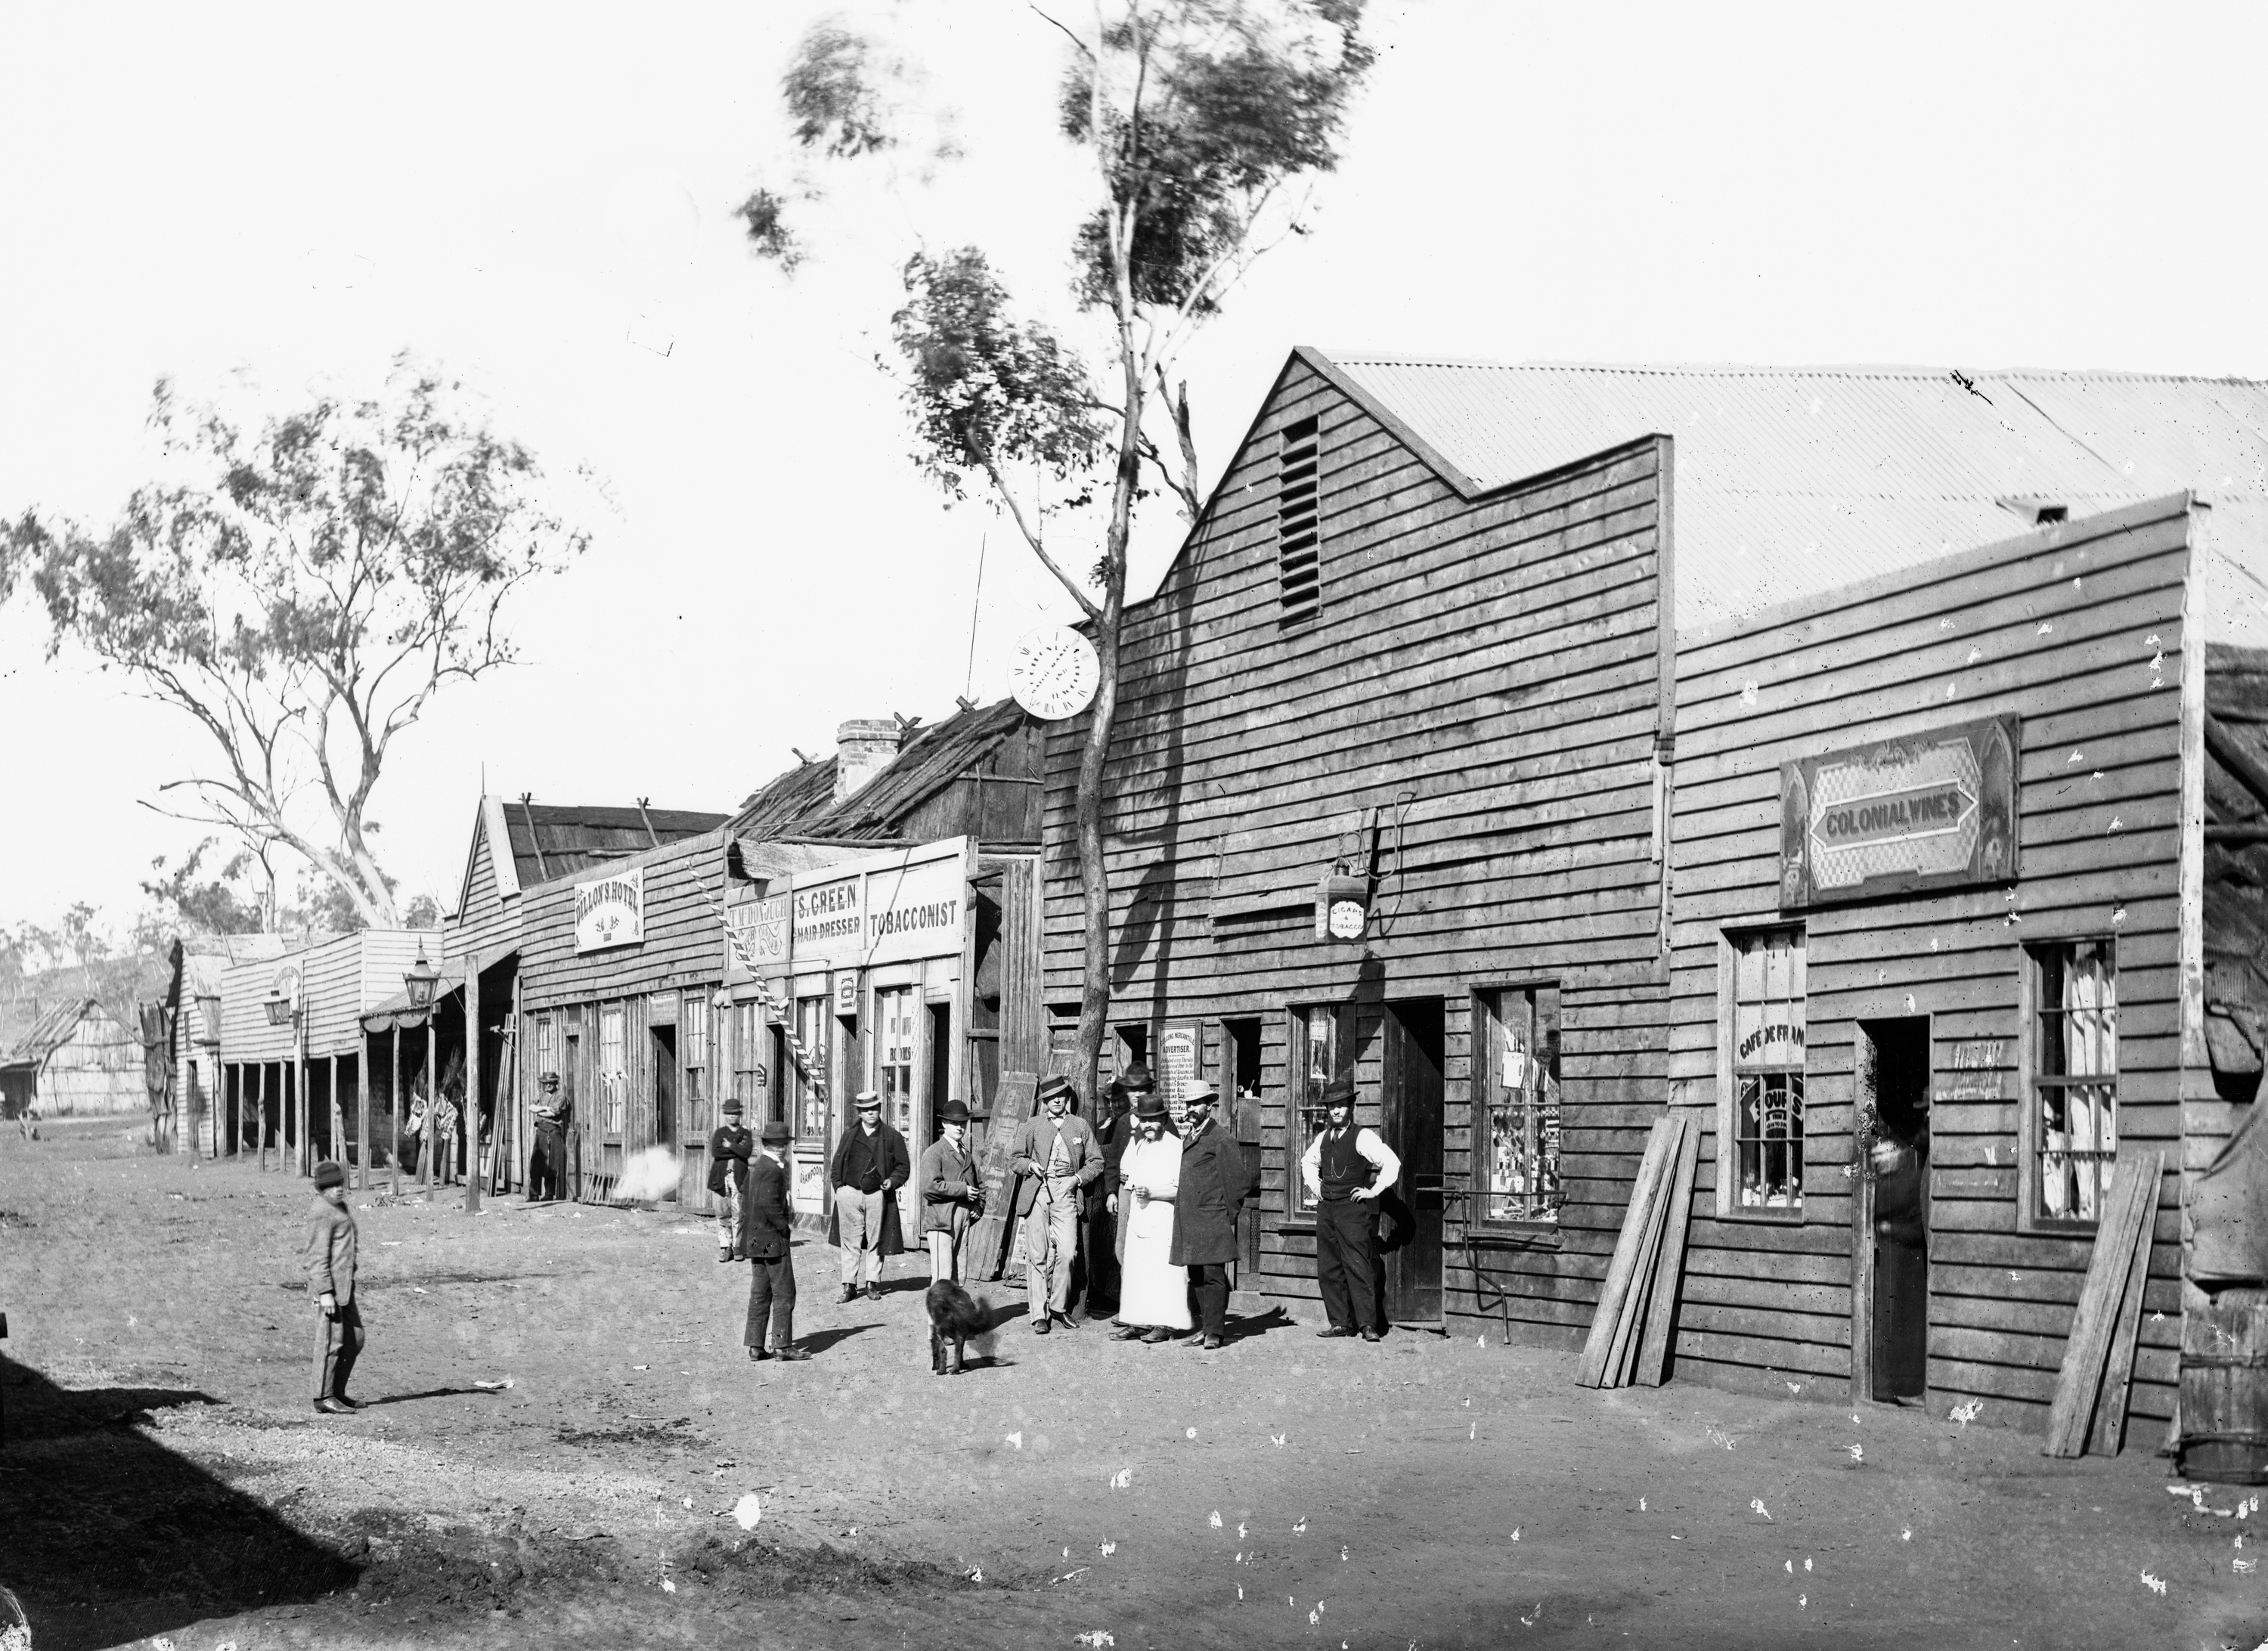 A black and white photograph of an 1800s main street.